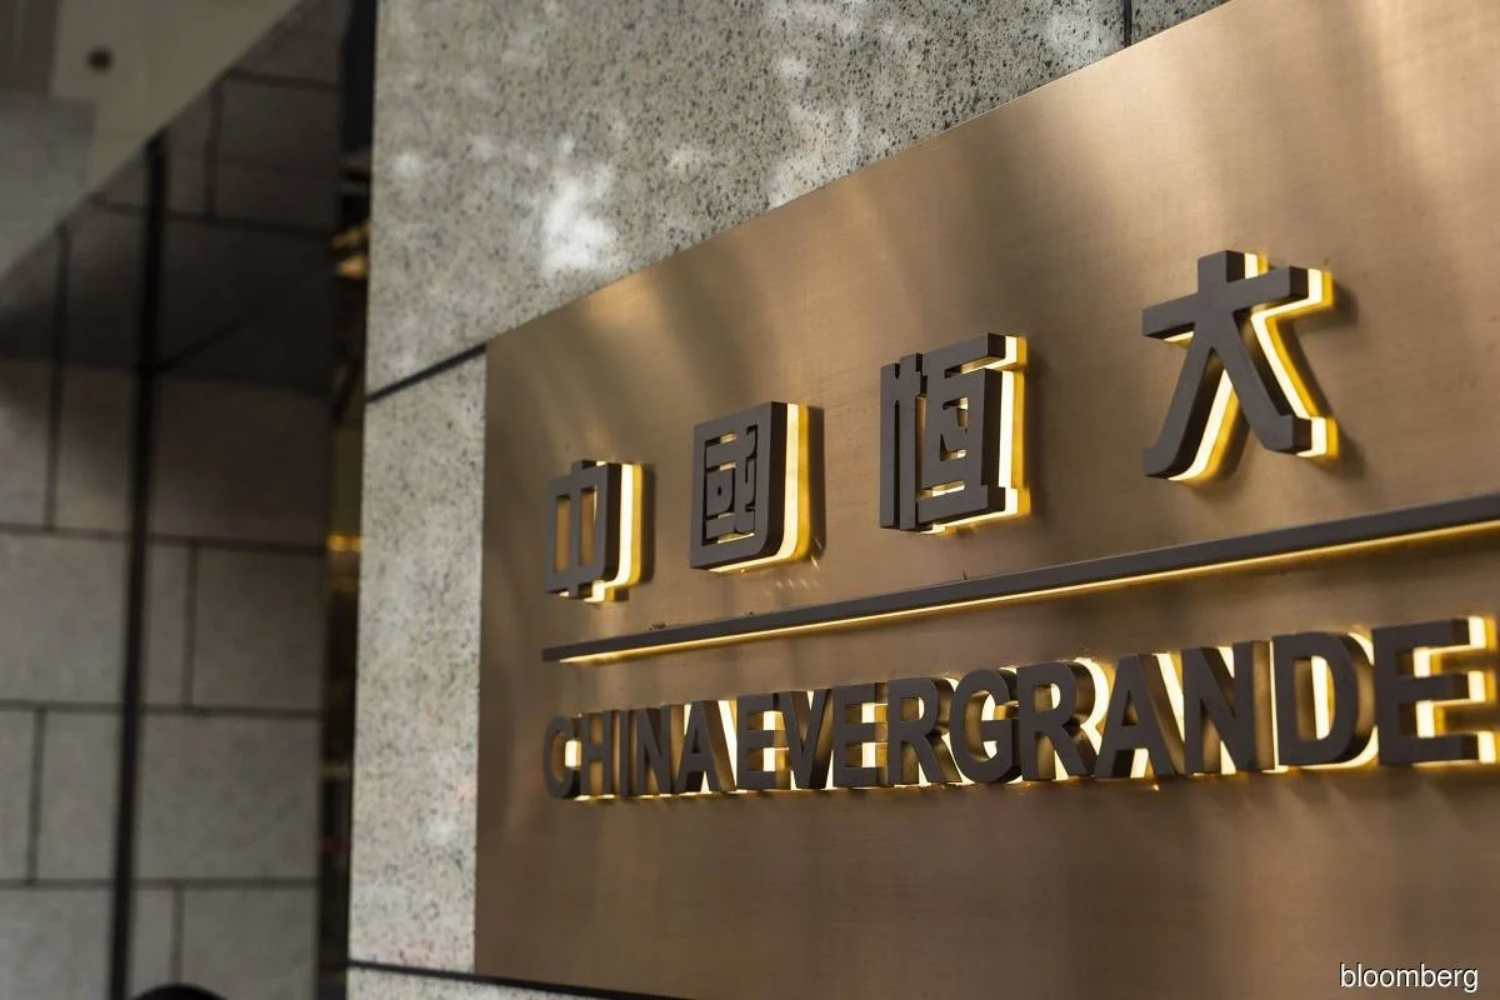 China asking state-backed firms to pick up Evergrande assets — sources